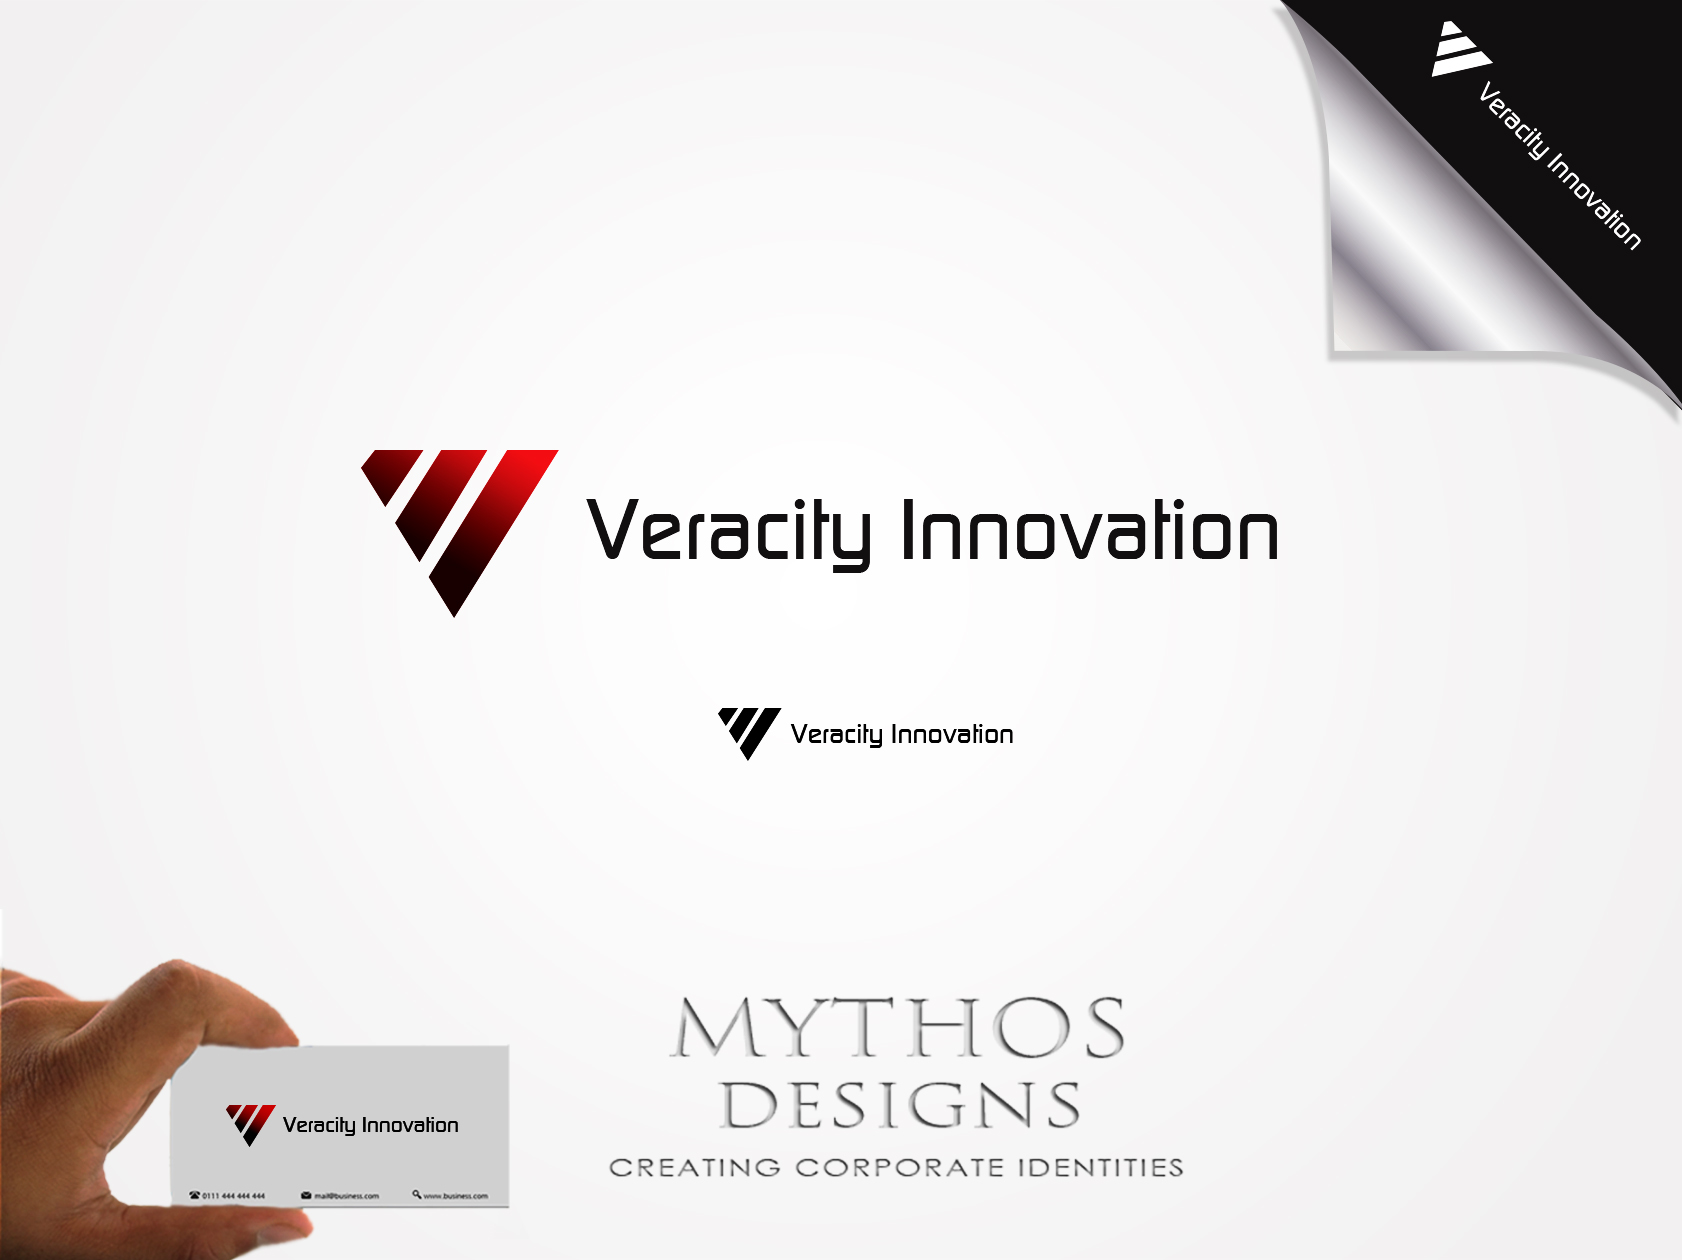 Logo Design by Mythos Designs - Entry No. 252 in the Logo Design Contest Creative Logo Design for Veracity Innovation, LLC.